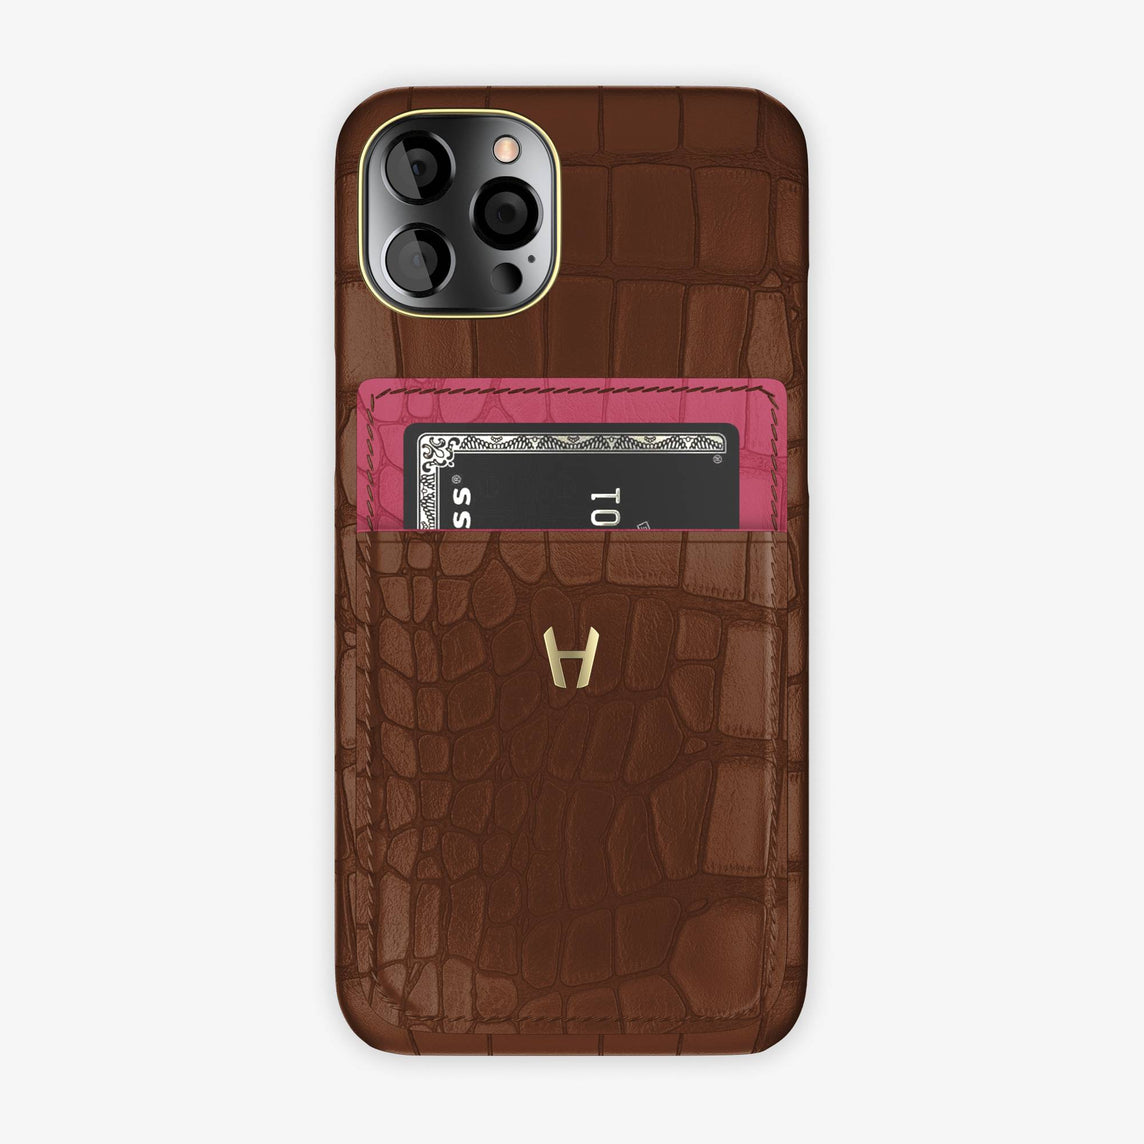 Alligator Pocket Case iPhone 12 & 12 Pro | Brown/Pink Girly - Yellow Gold